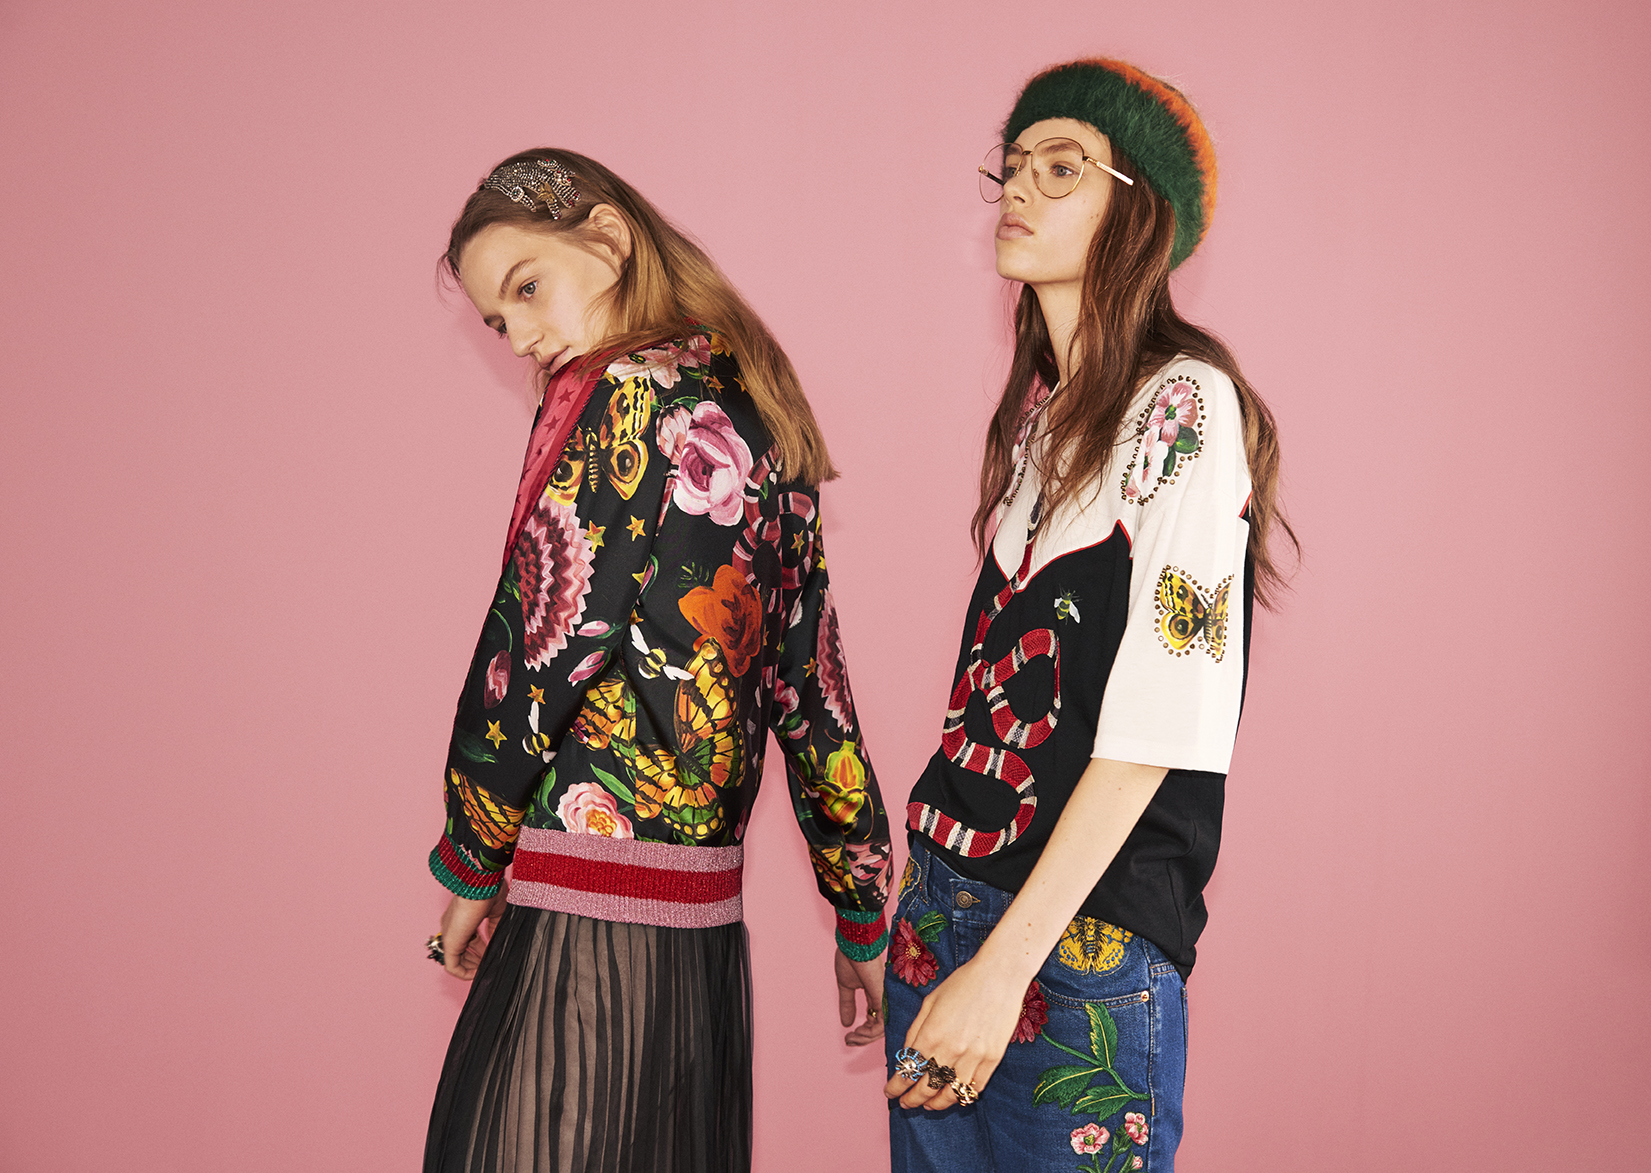 Gucci To Launch An Online Only Gucci Garden Collection